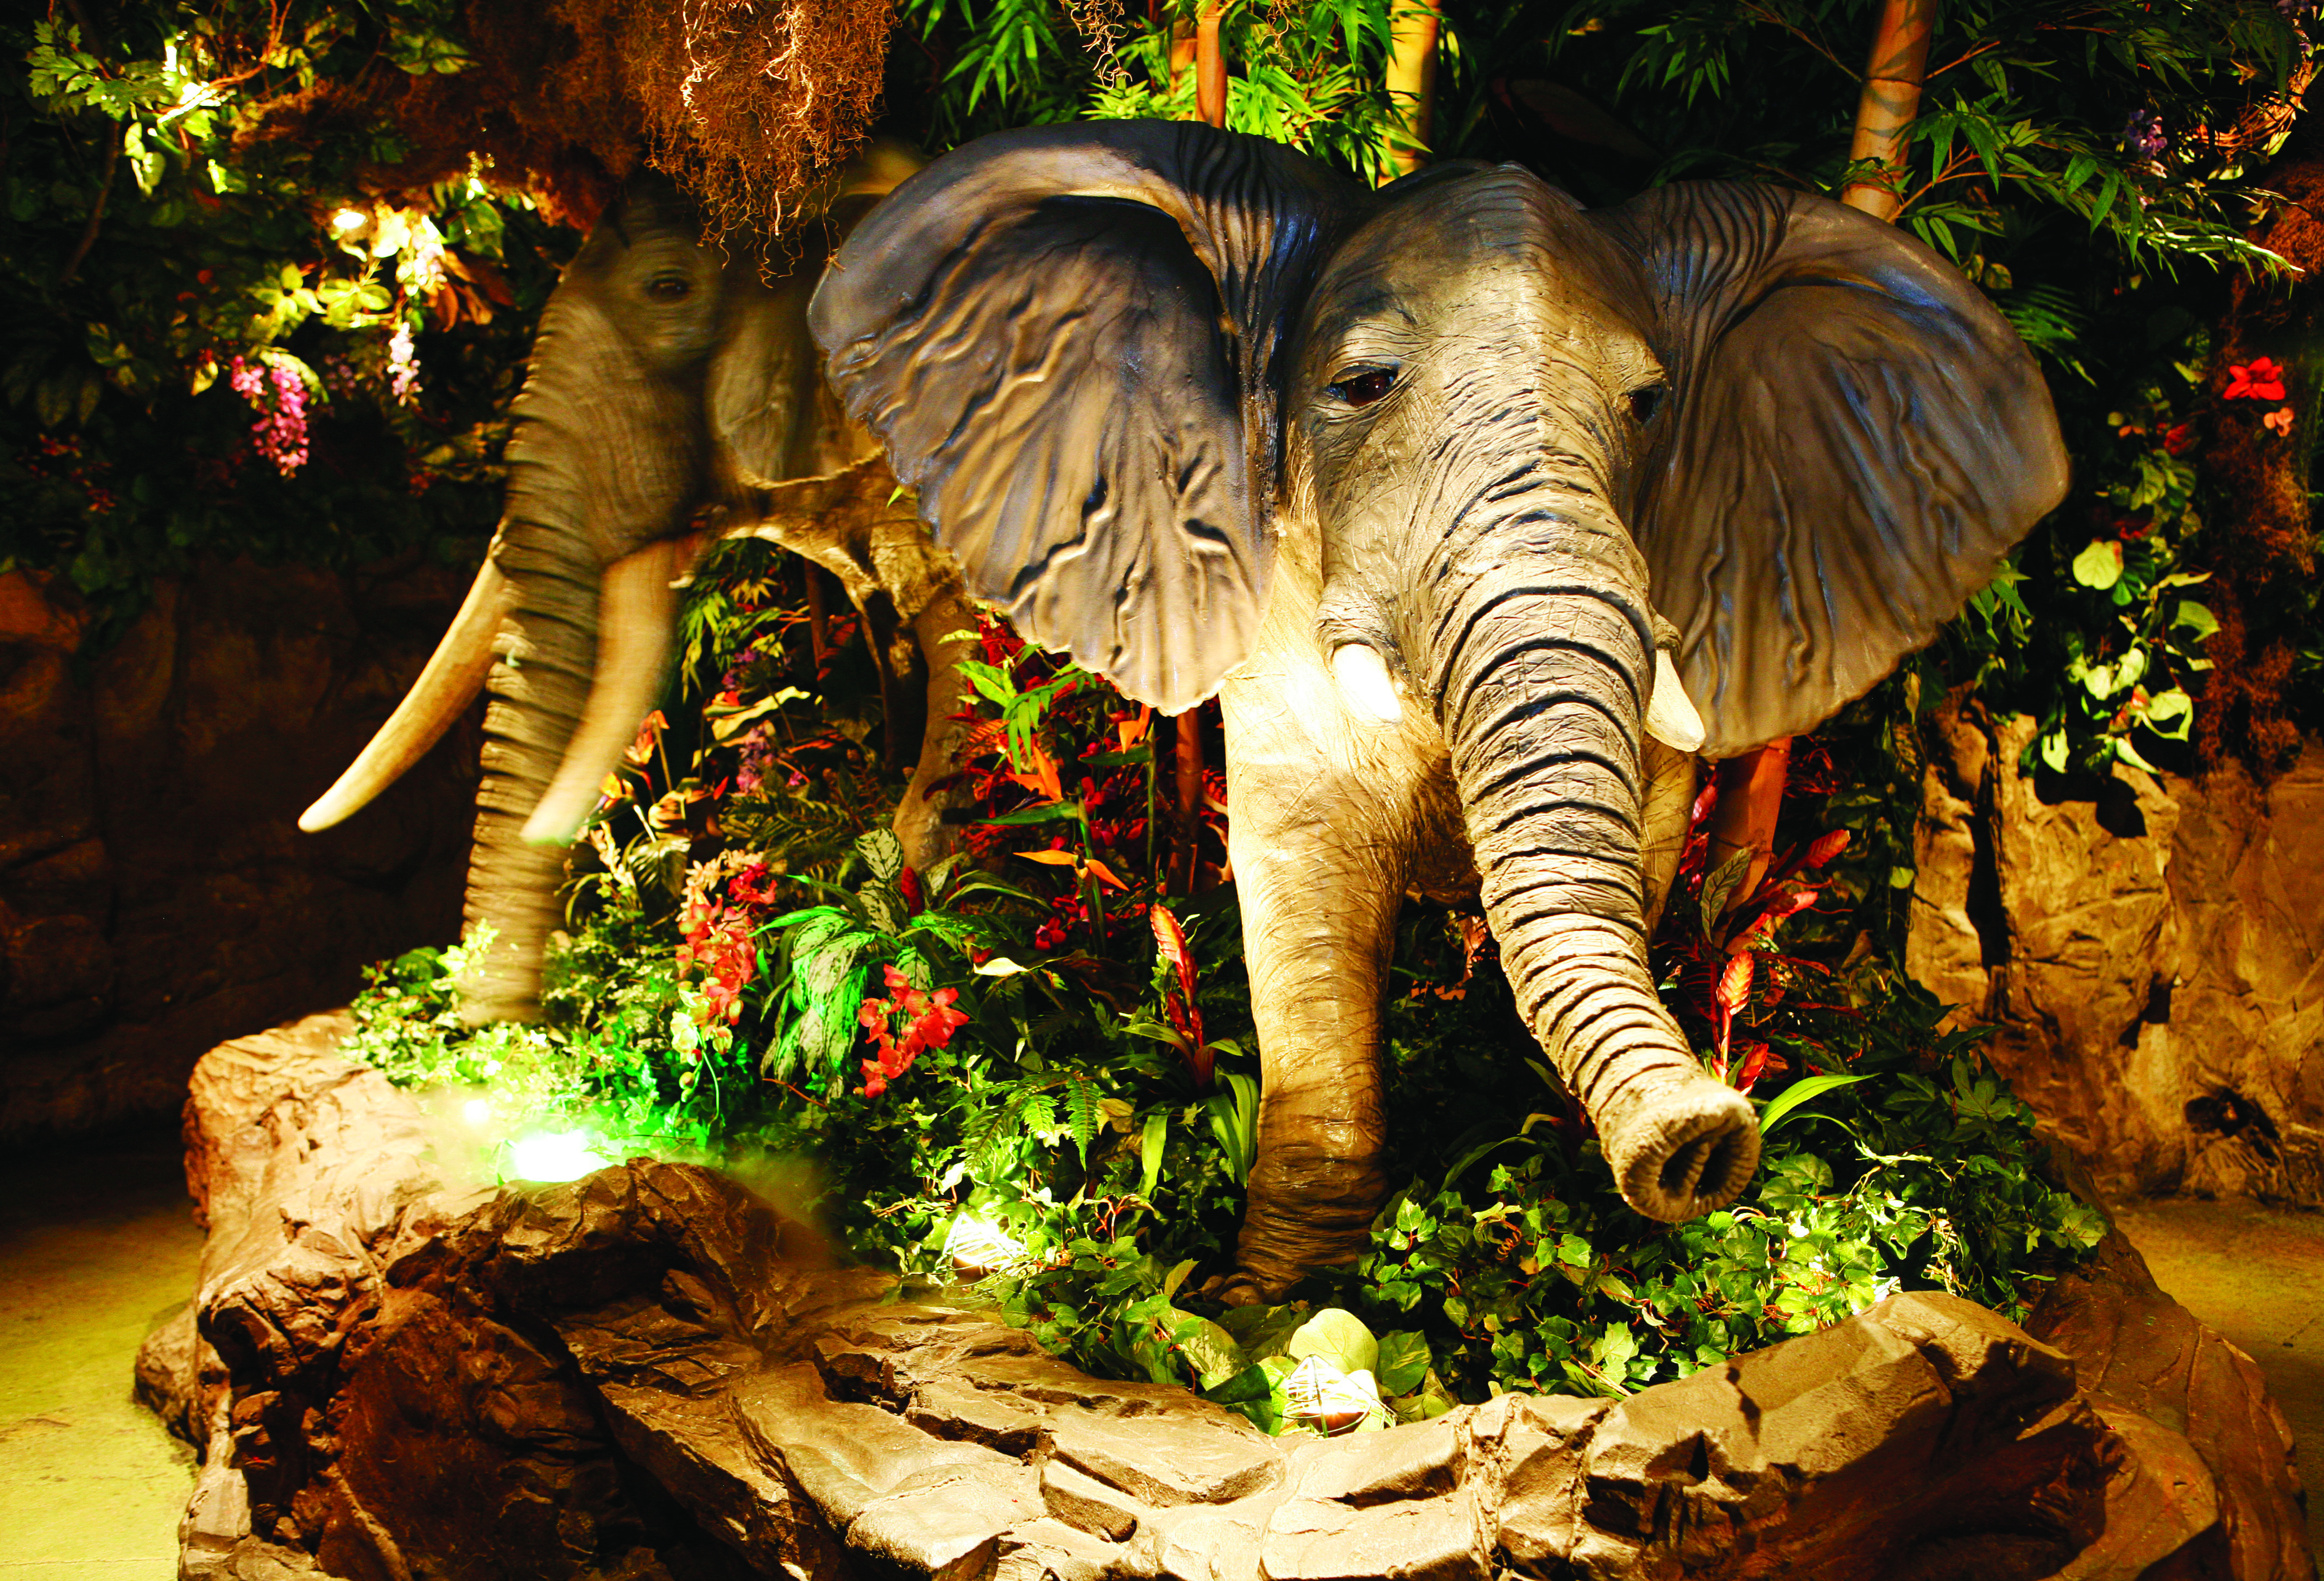 The trumpeting Elephants at Rainforest Cafe! Watch them move and ...